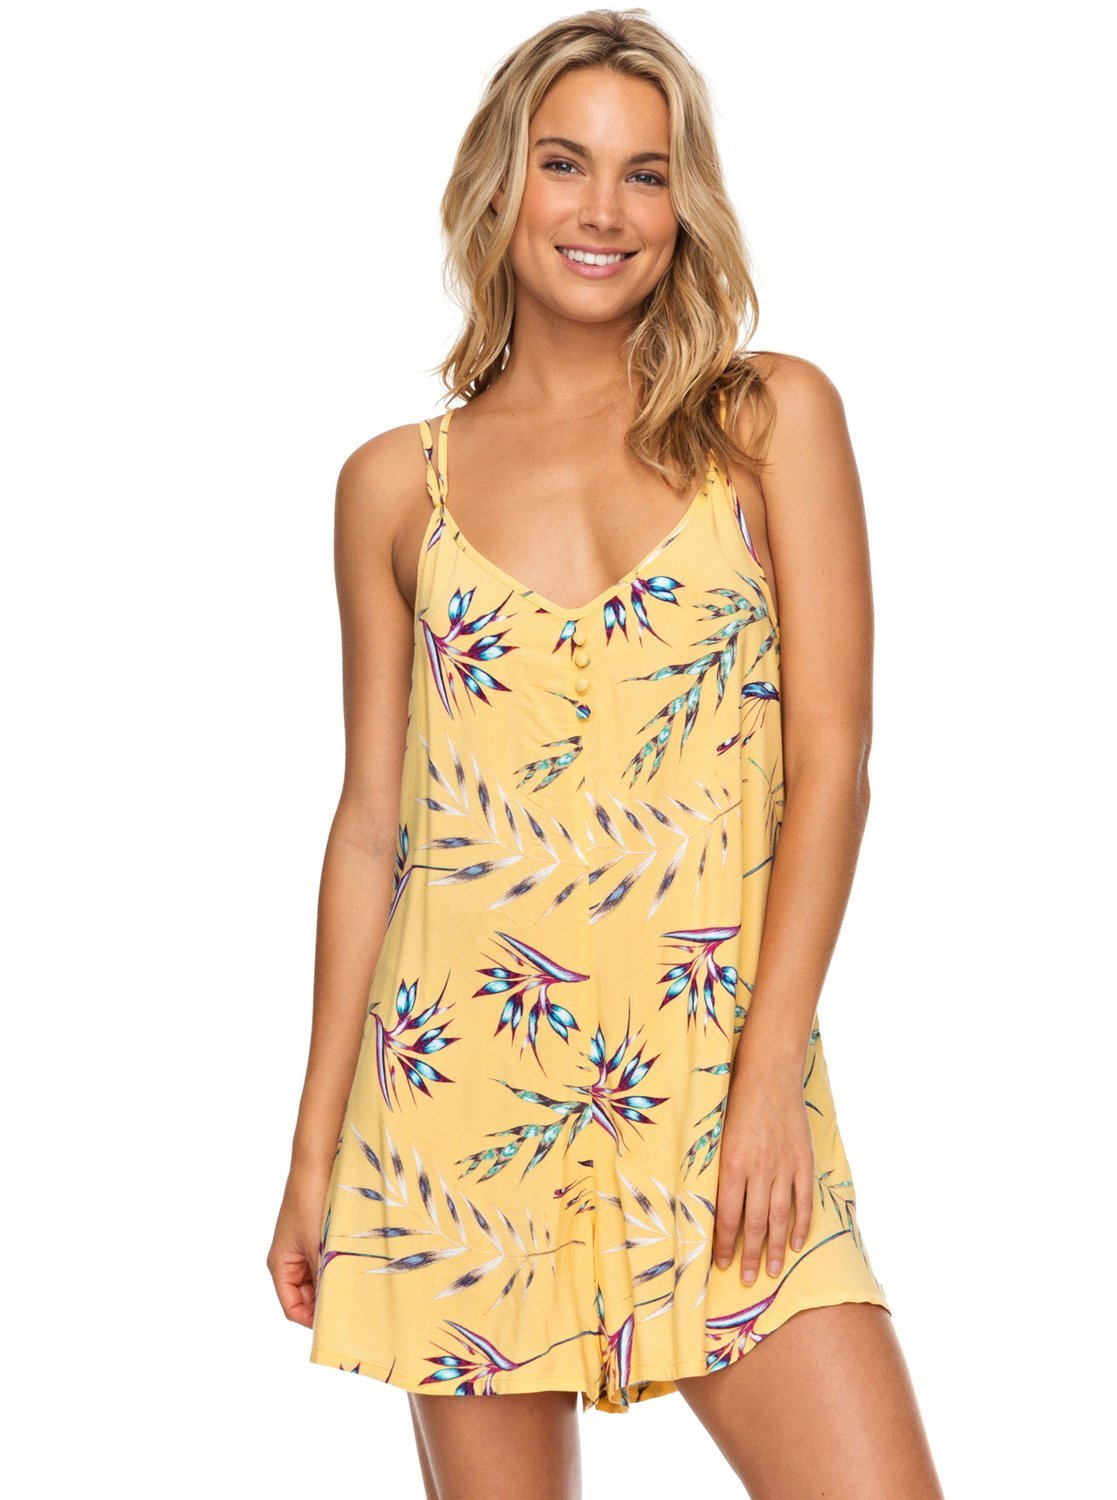 Roxy Mitten Shadow Romper - 88 Gear